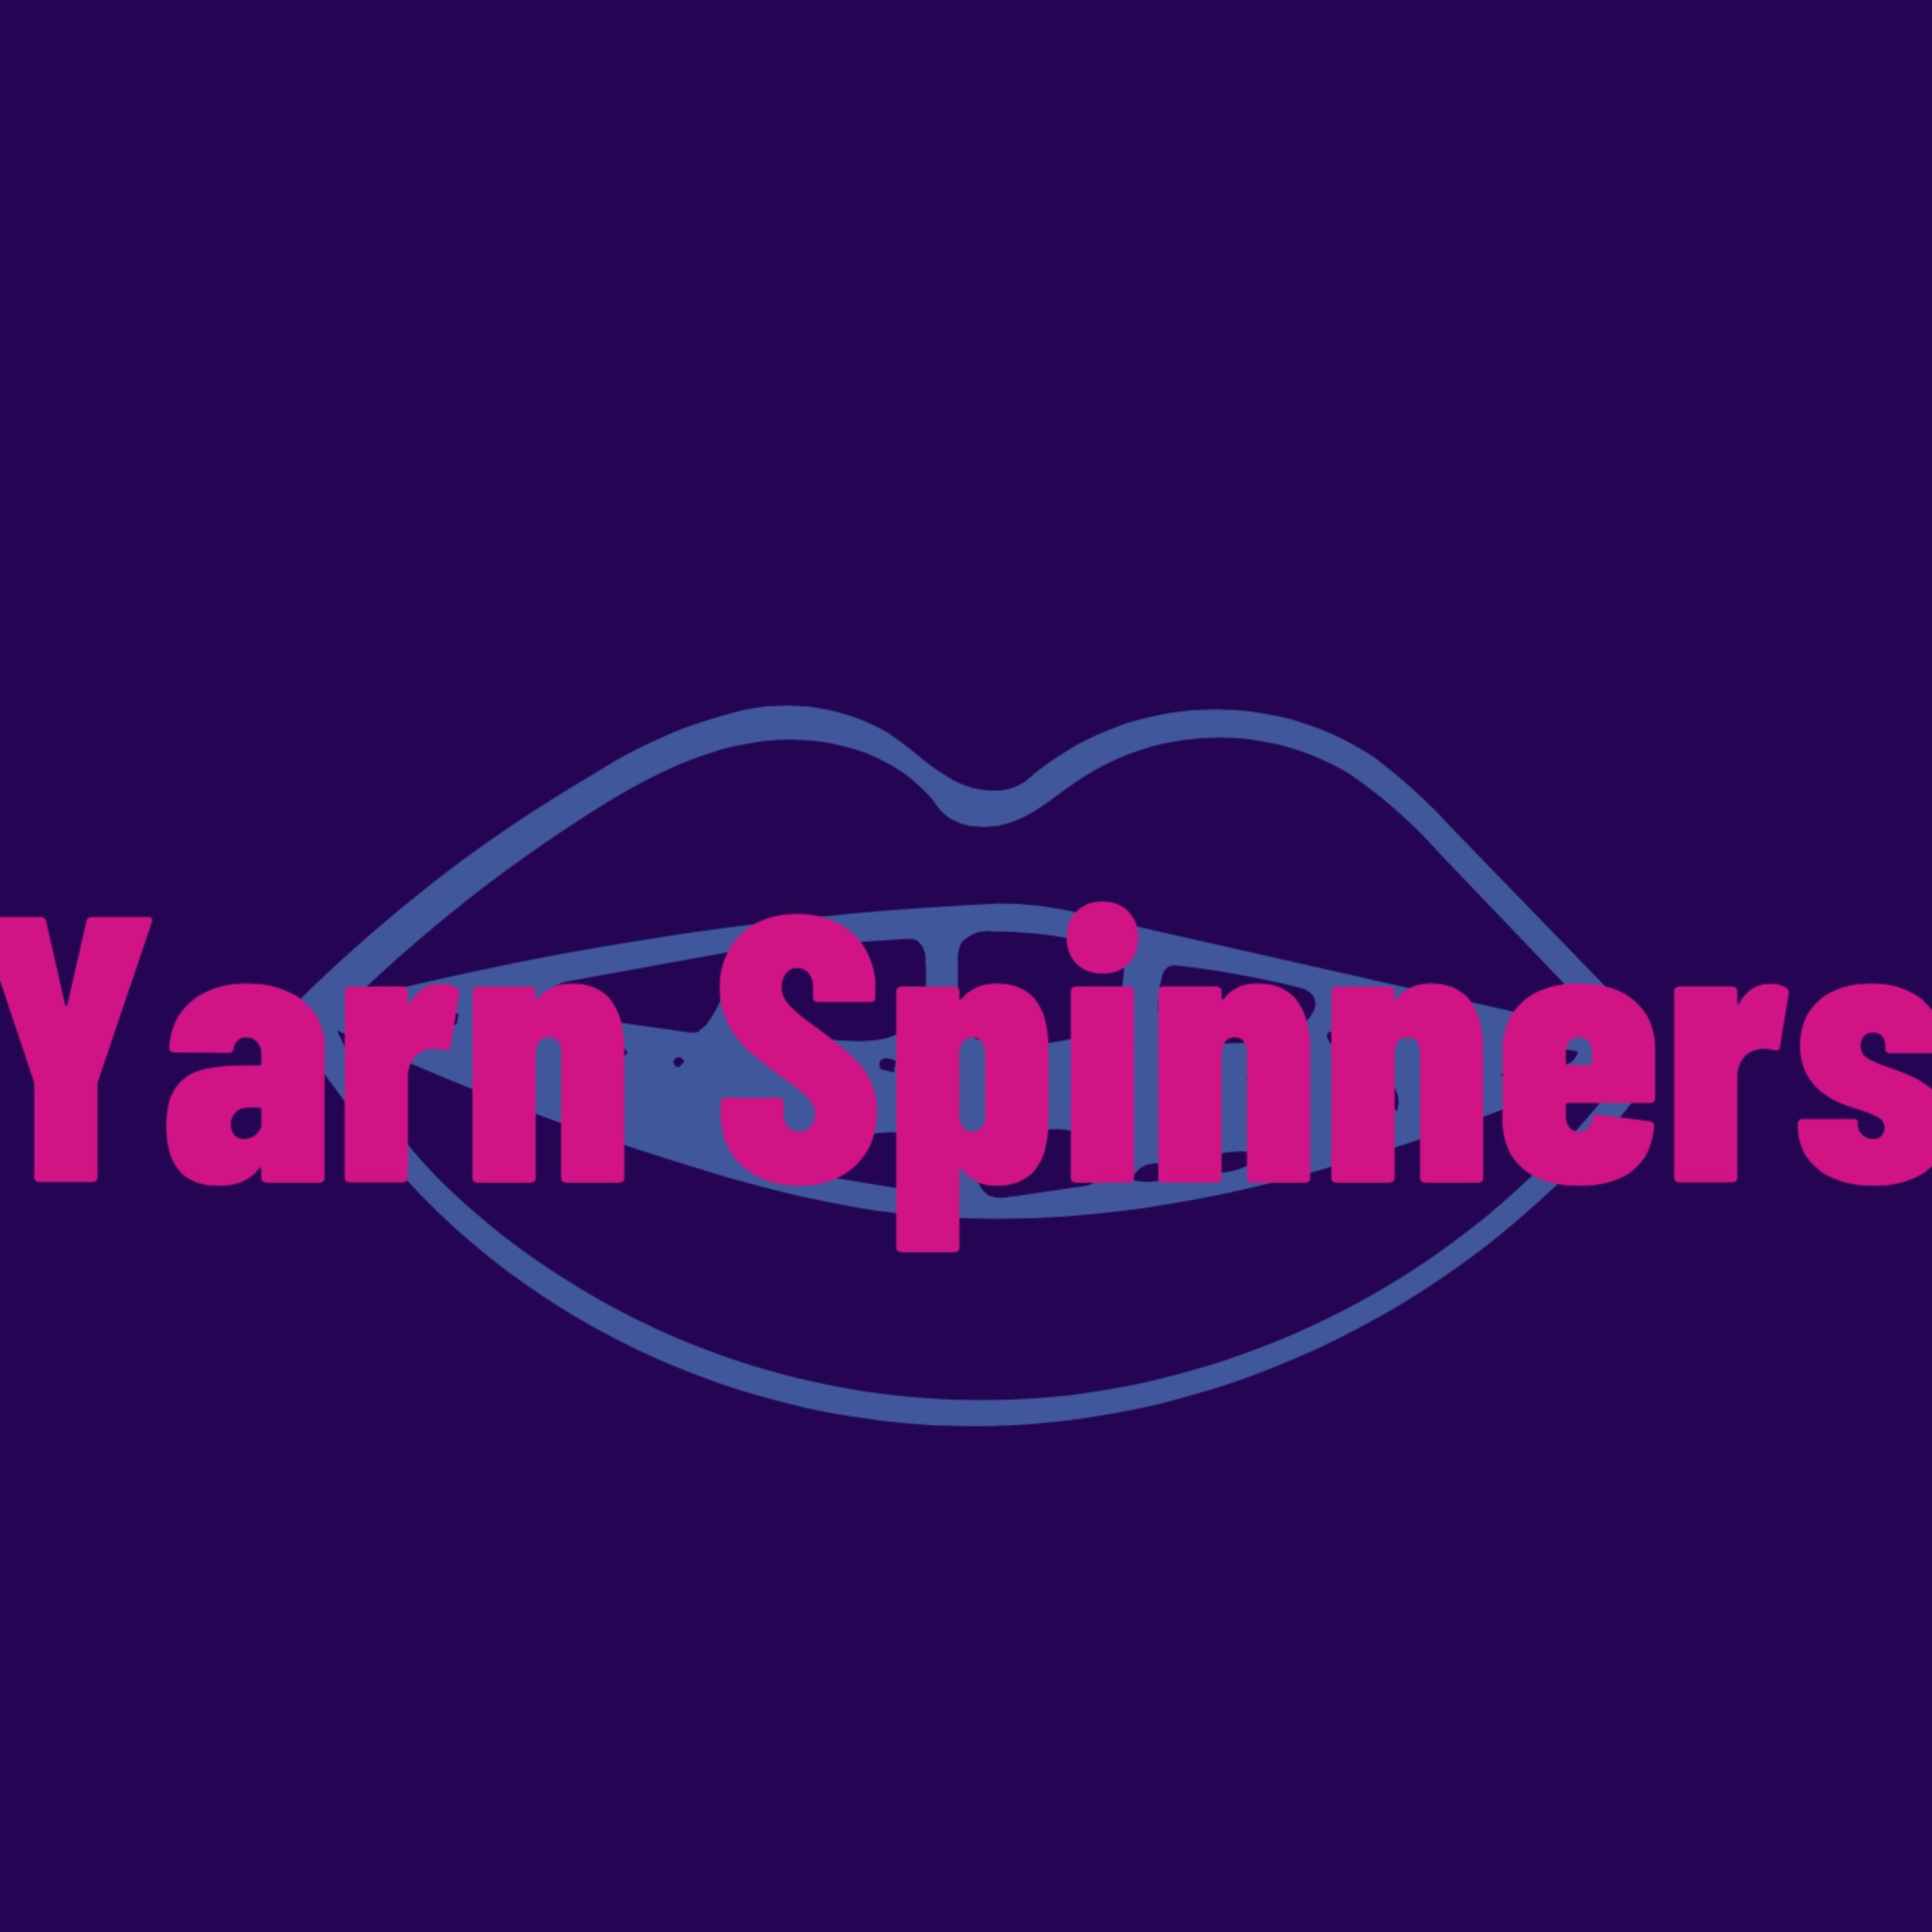 Yarn Spinners | Listen via Stitcher for Podcasts